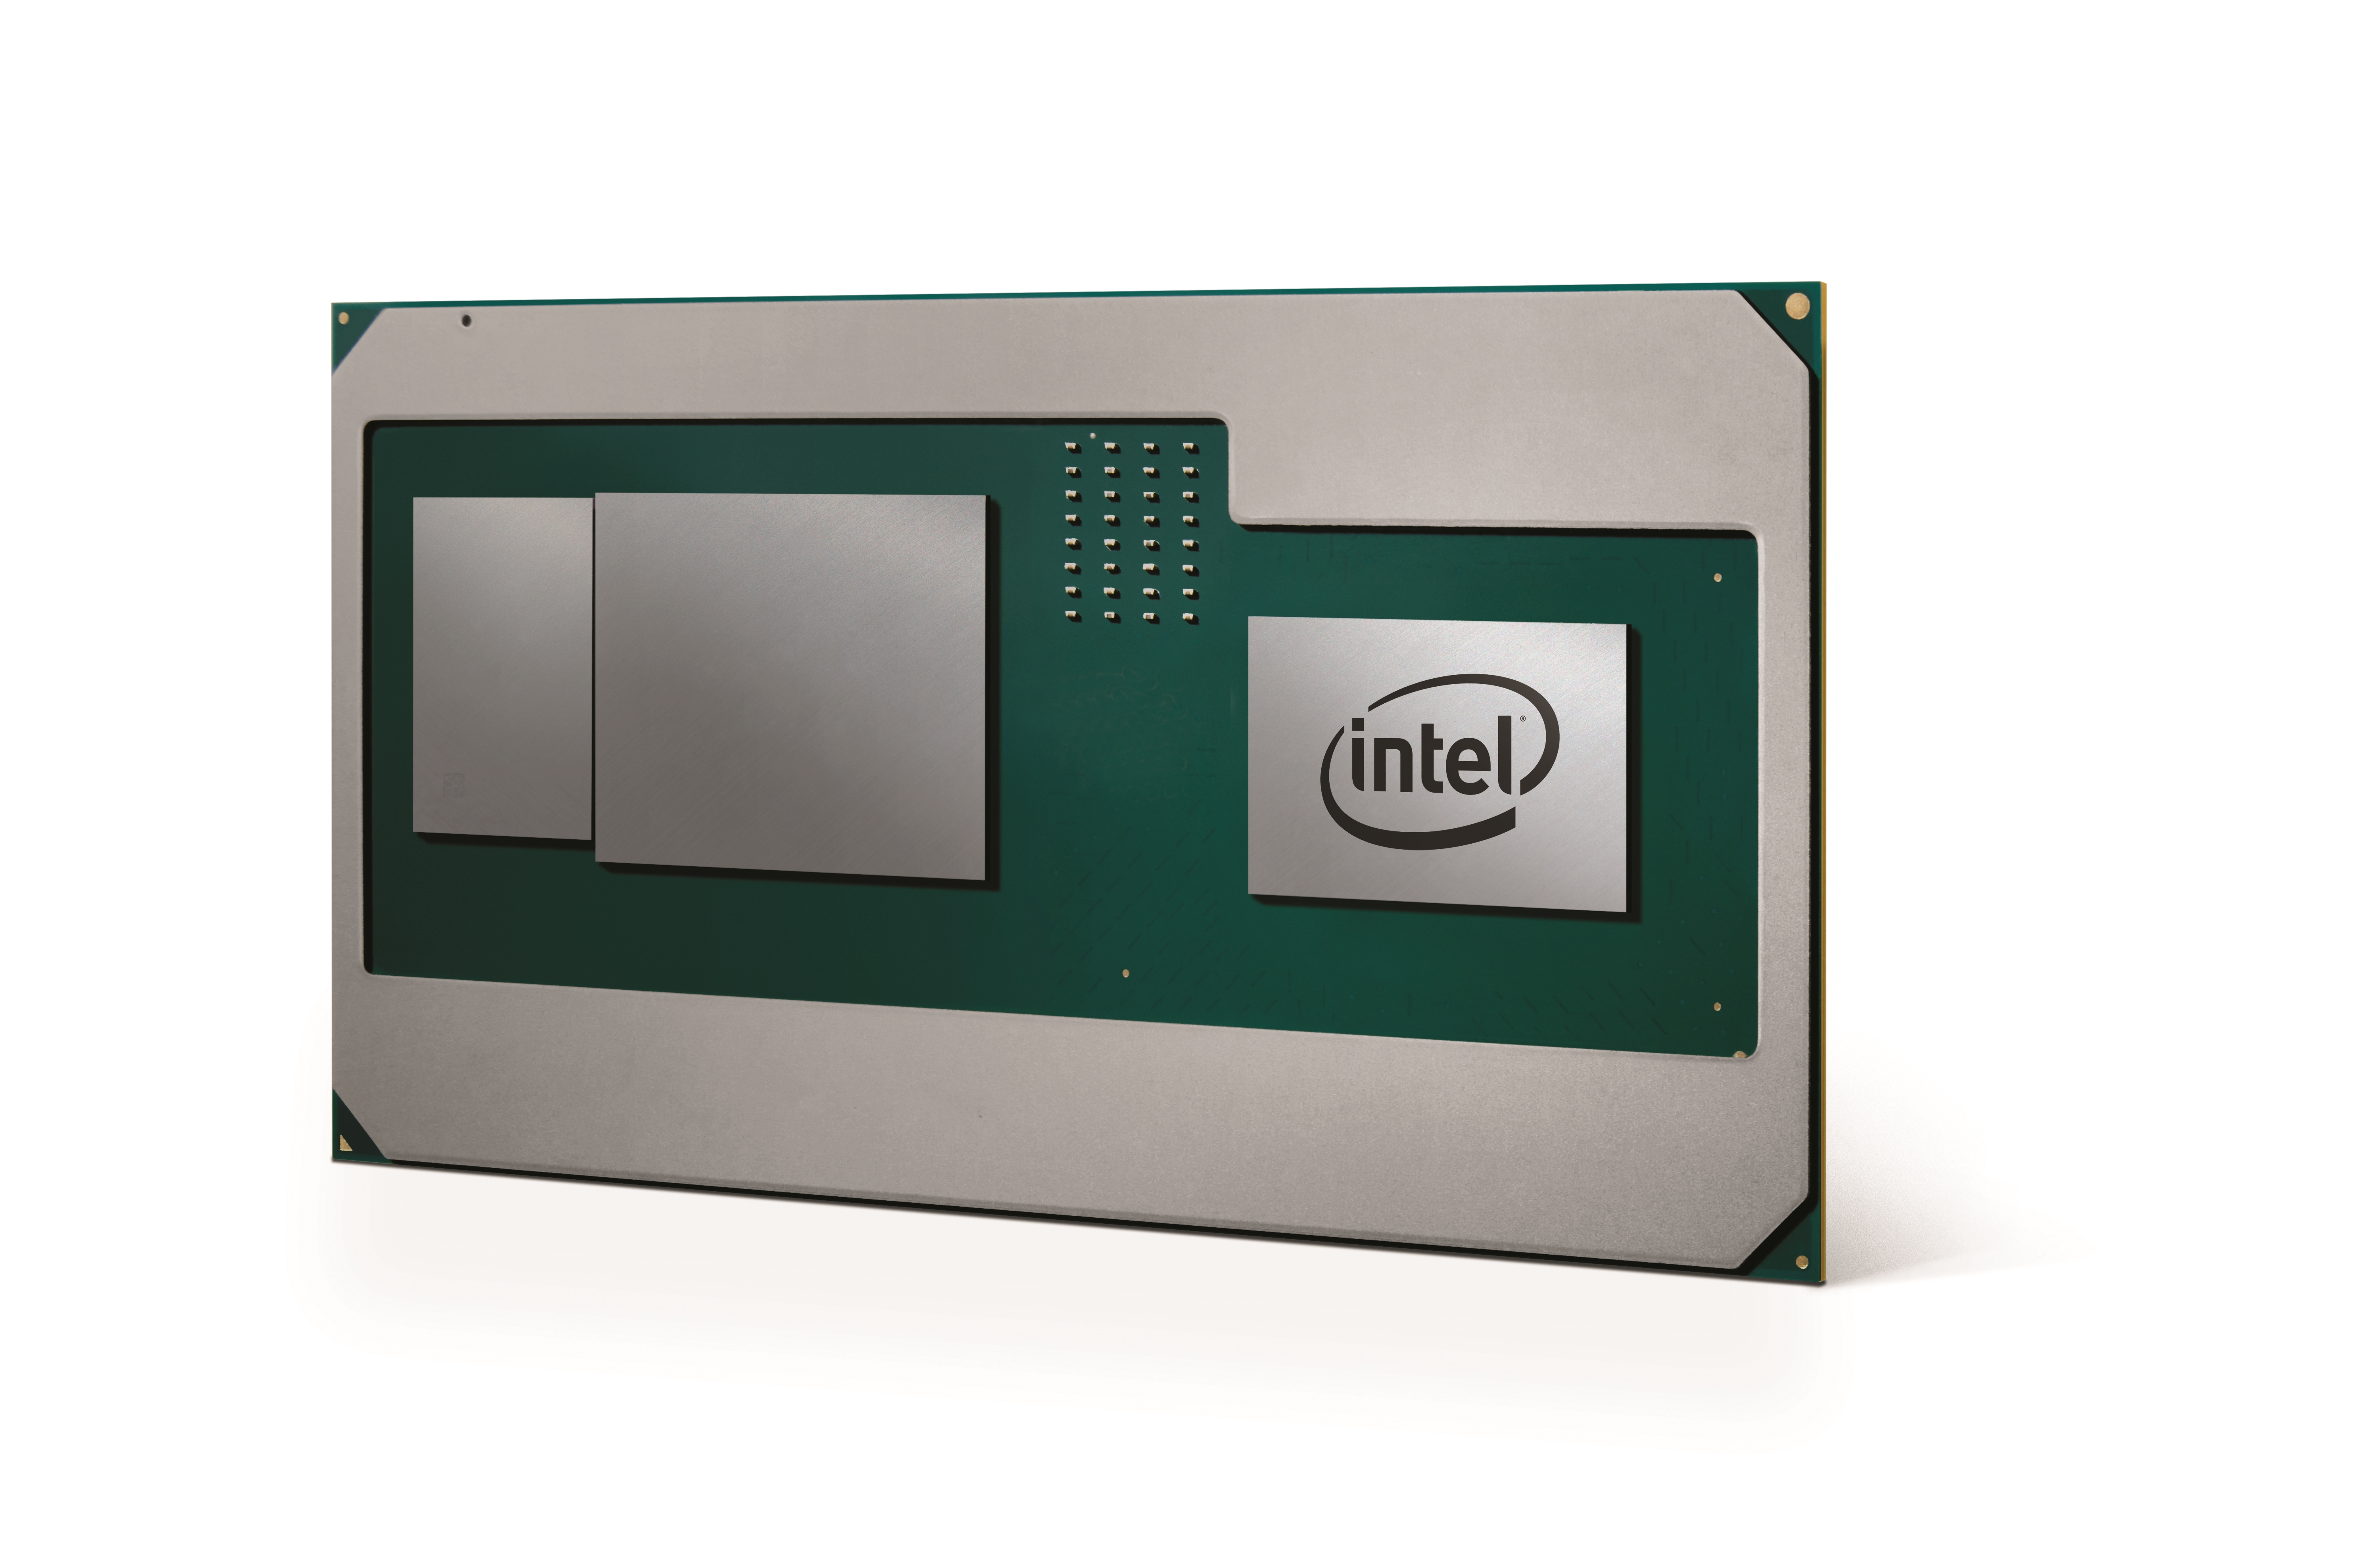 Looking at the image provided by Intel on the new product arrangement actually adds a new question or two to the bucket list. Here we have an Intel chip on ...